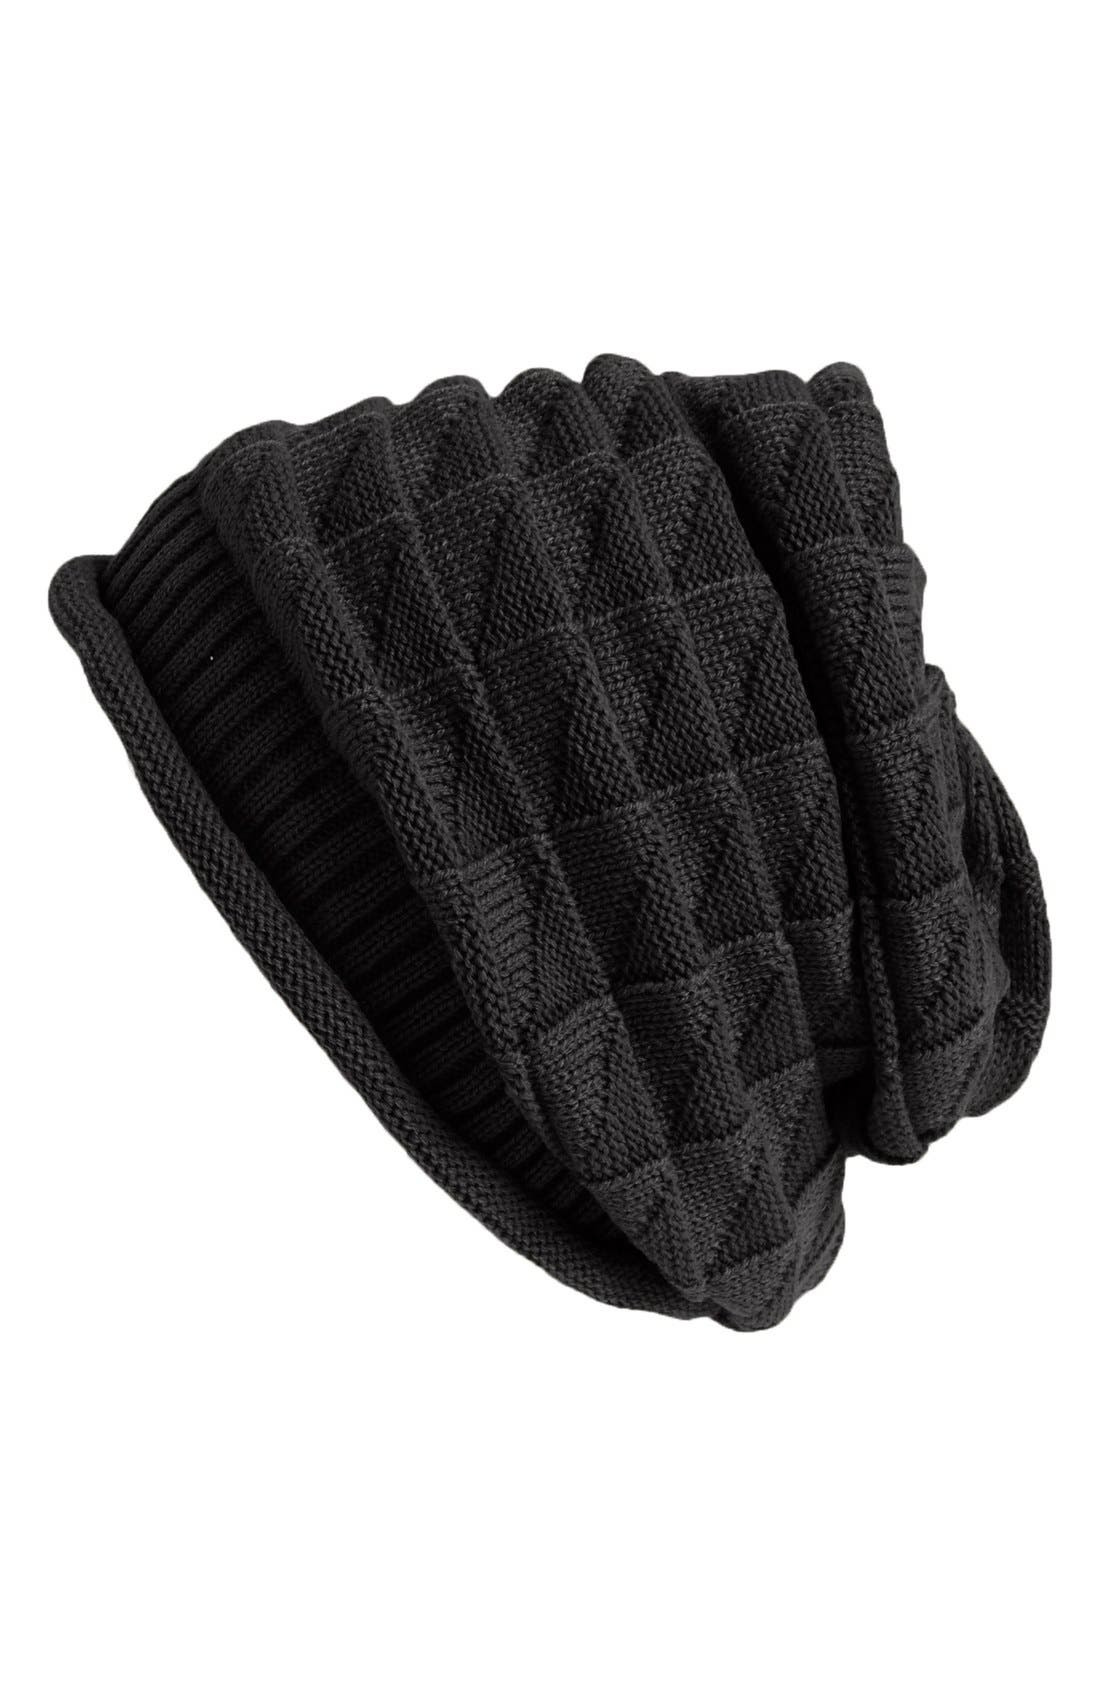 Alternate Image 1 Selected - Amici Accessories Square Knit Beanie (Juniors) (Online Only)